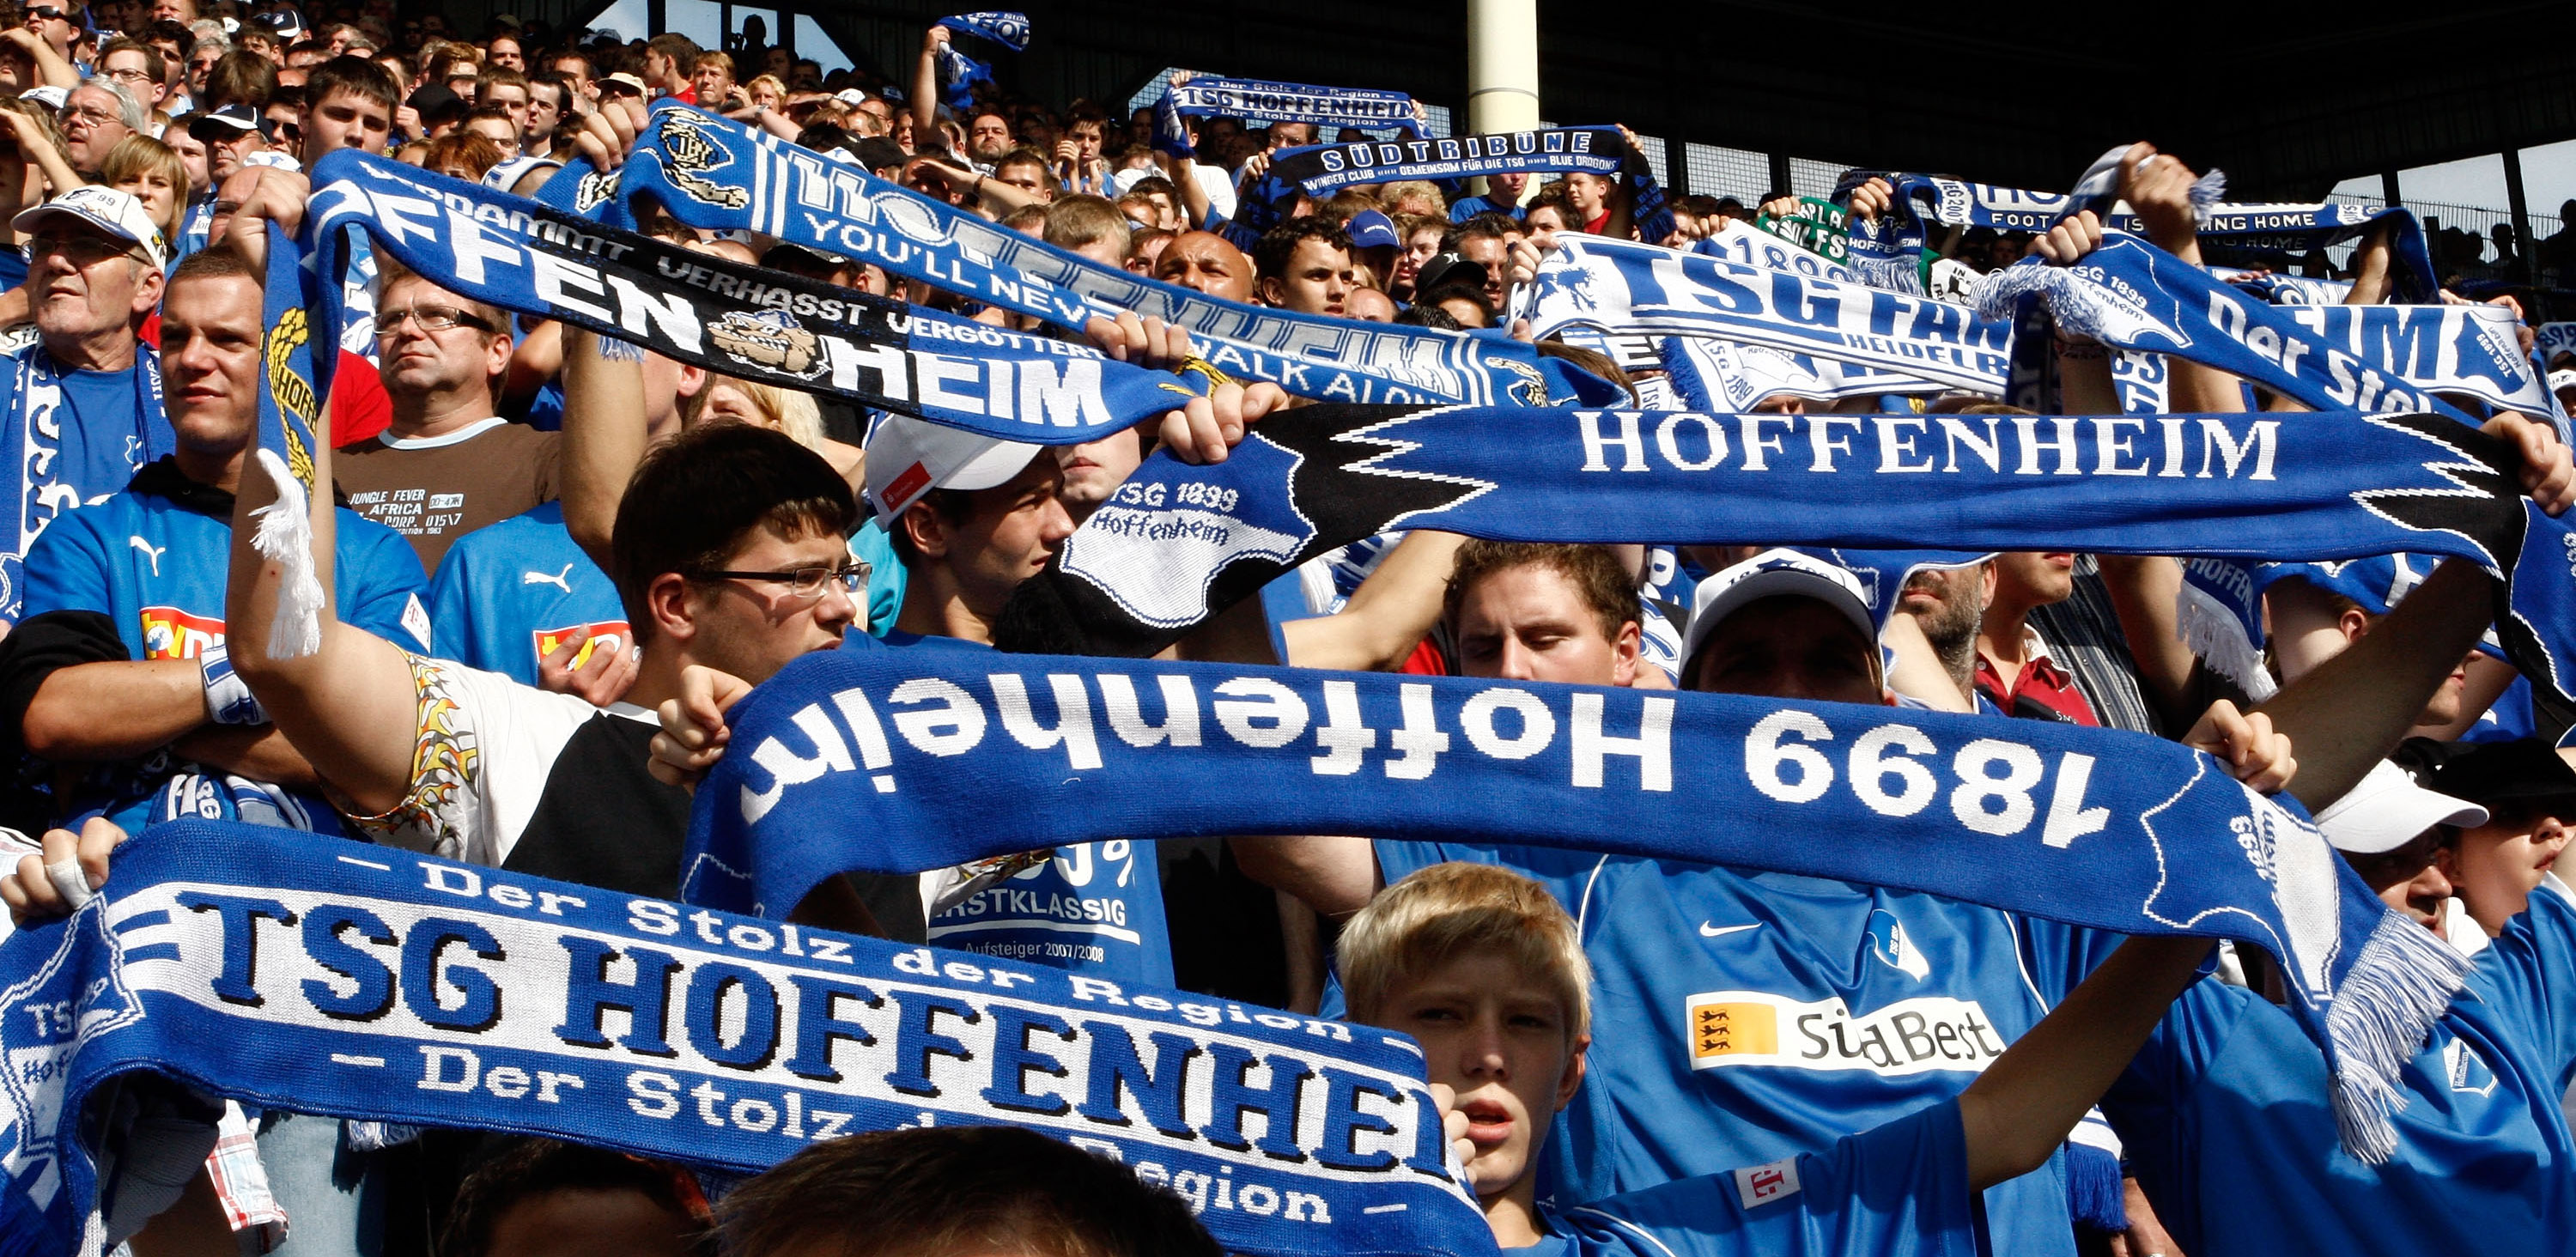 MANNHEIM, GERMANY - AUGUST 23: The Fans of TSG 1899 Hoffenheim celebrate after winning during the Bundesliga match TSG 1899 Hoffenheim against Borussia Moenchengladbach at the Carl Benz stadium in Mannheim on August 23, 2008 in Mannheim, Germany. (Photo by Thorsten Wagner/Bongarts/Getty Images)